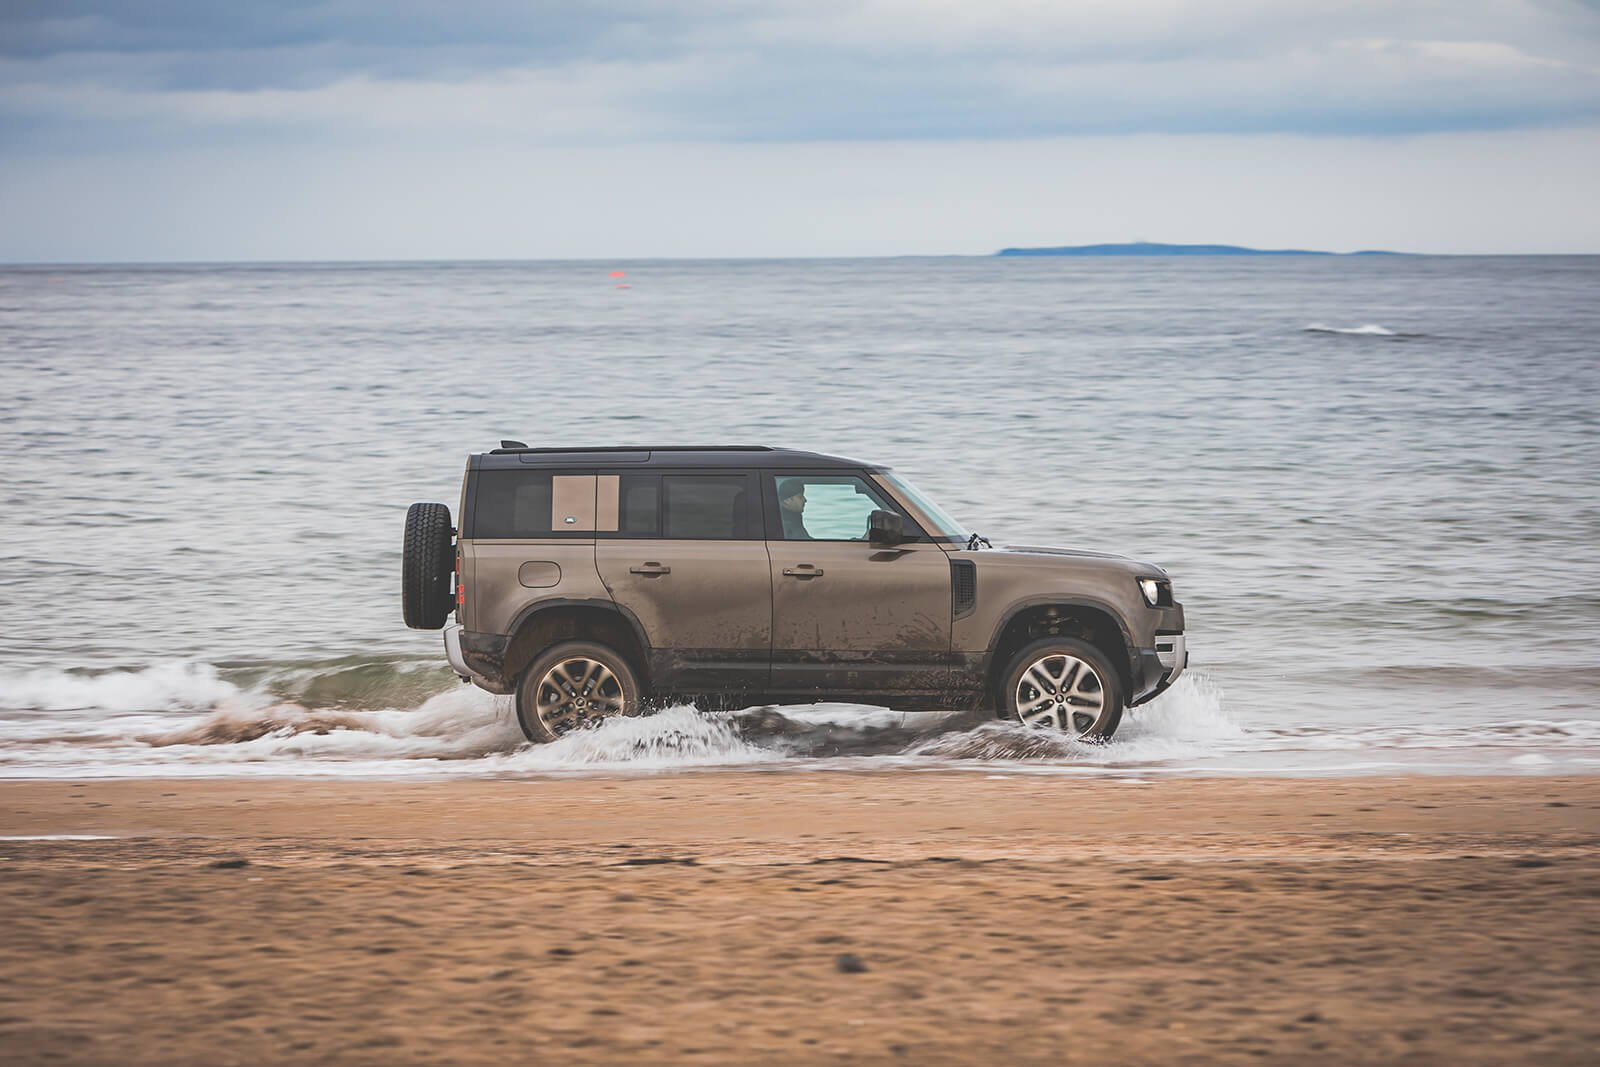 Land Rover Defender 2021 Right tracking on beach